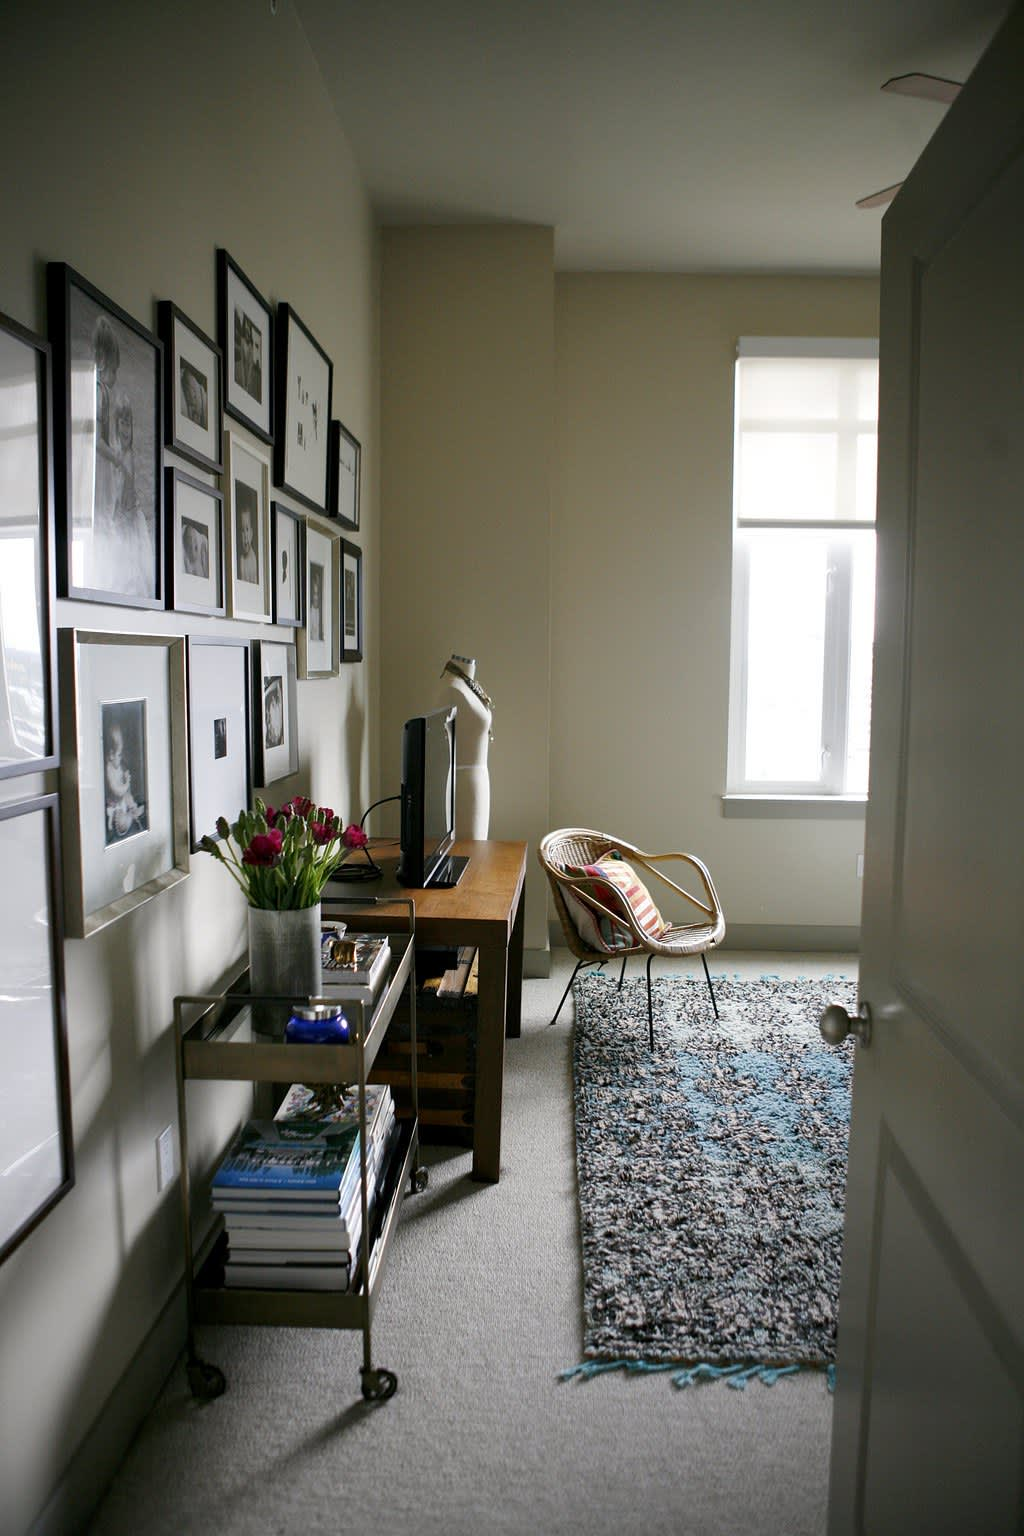 House Tour: A Bright Vintage Modern Loft   Apartment Therapy